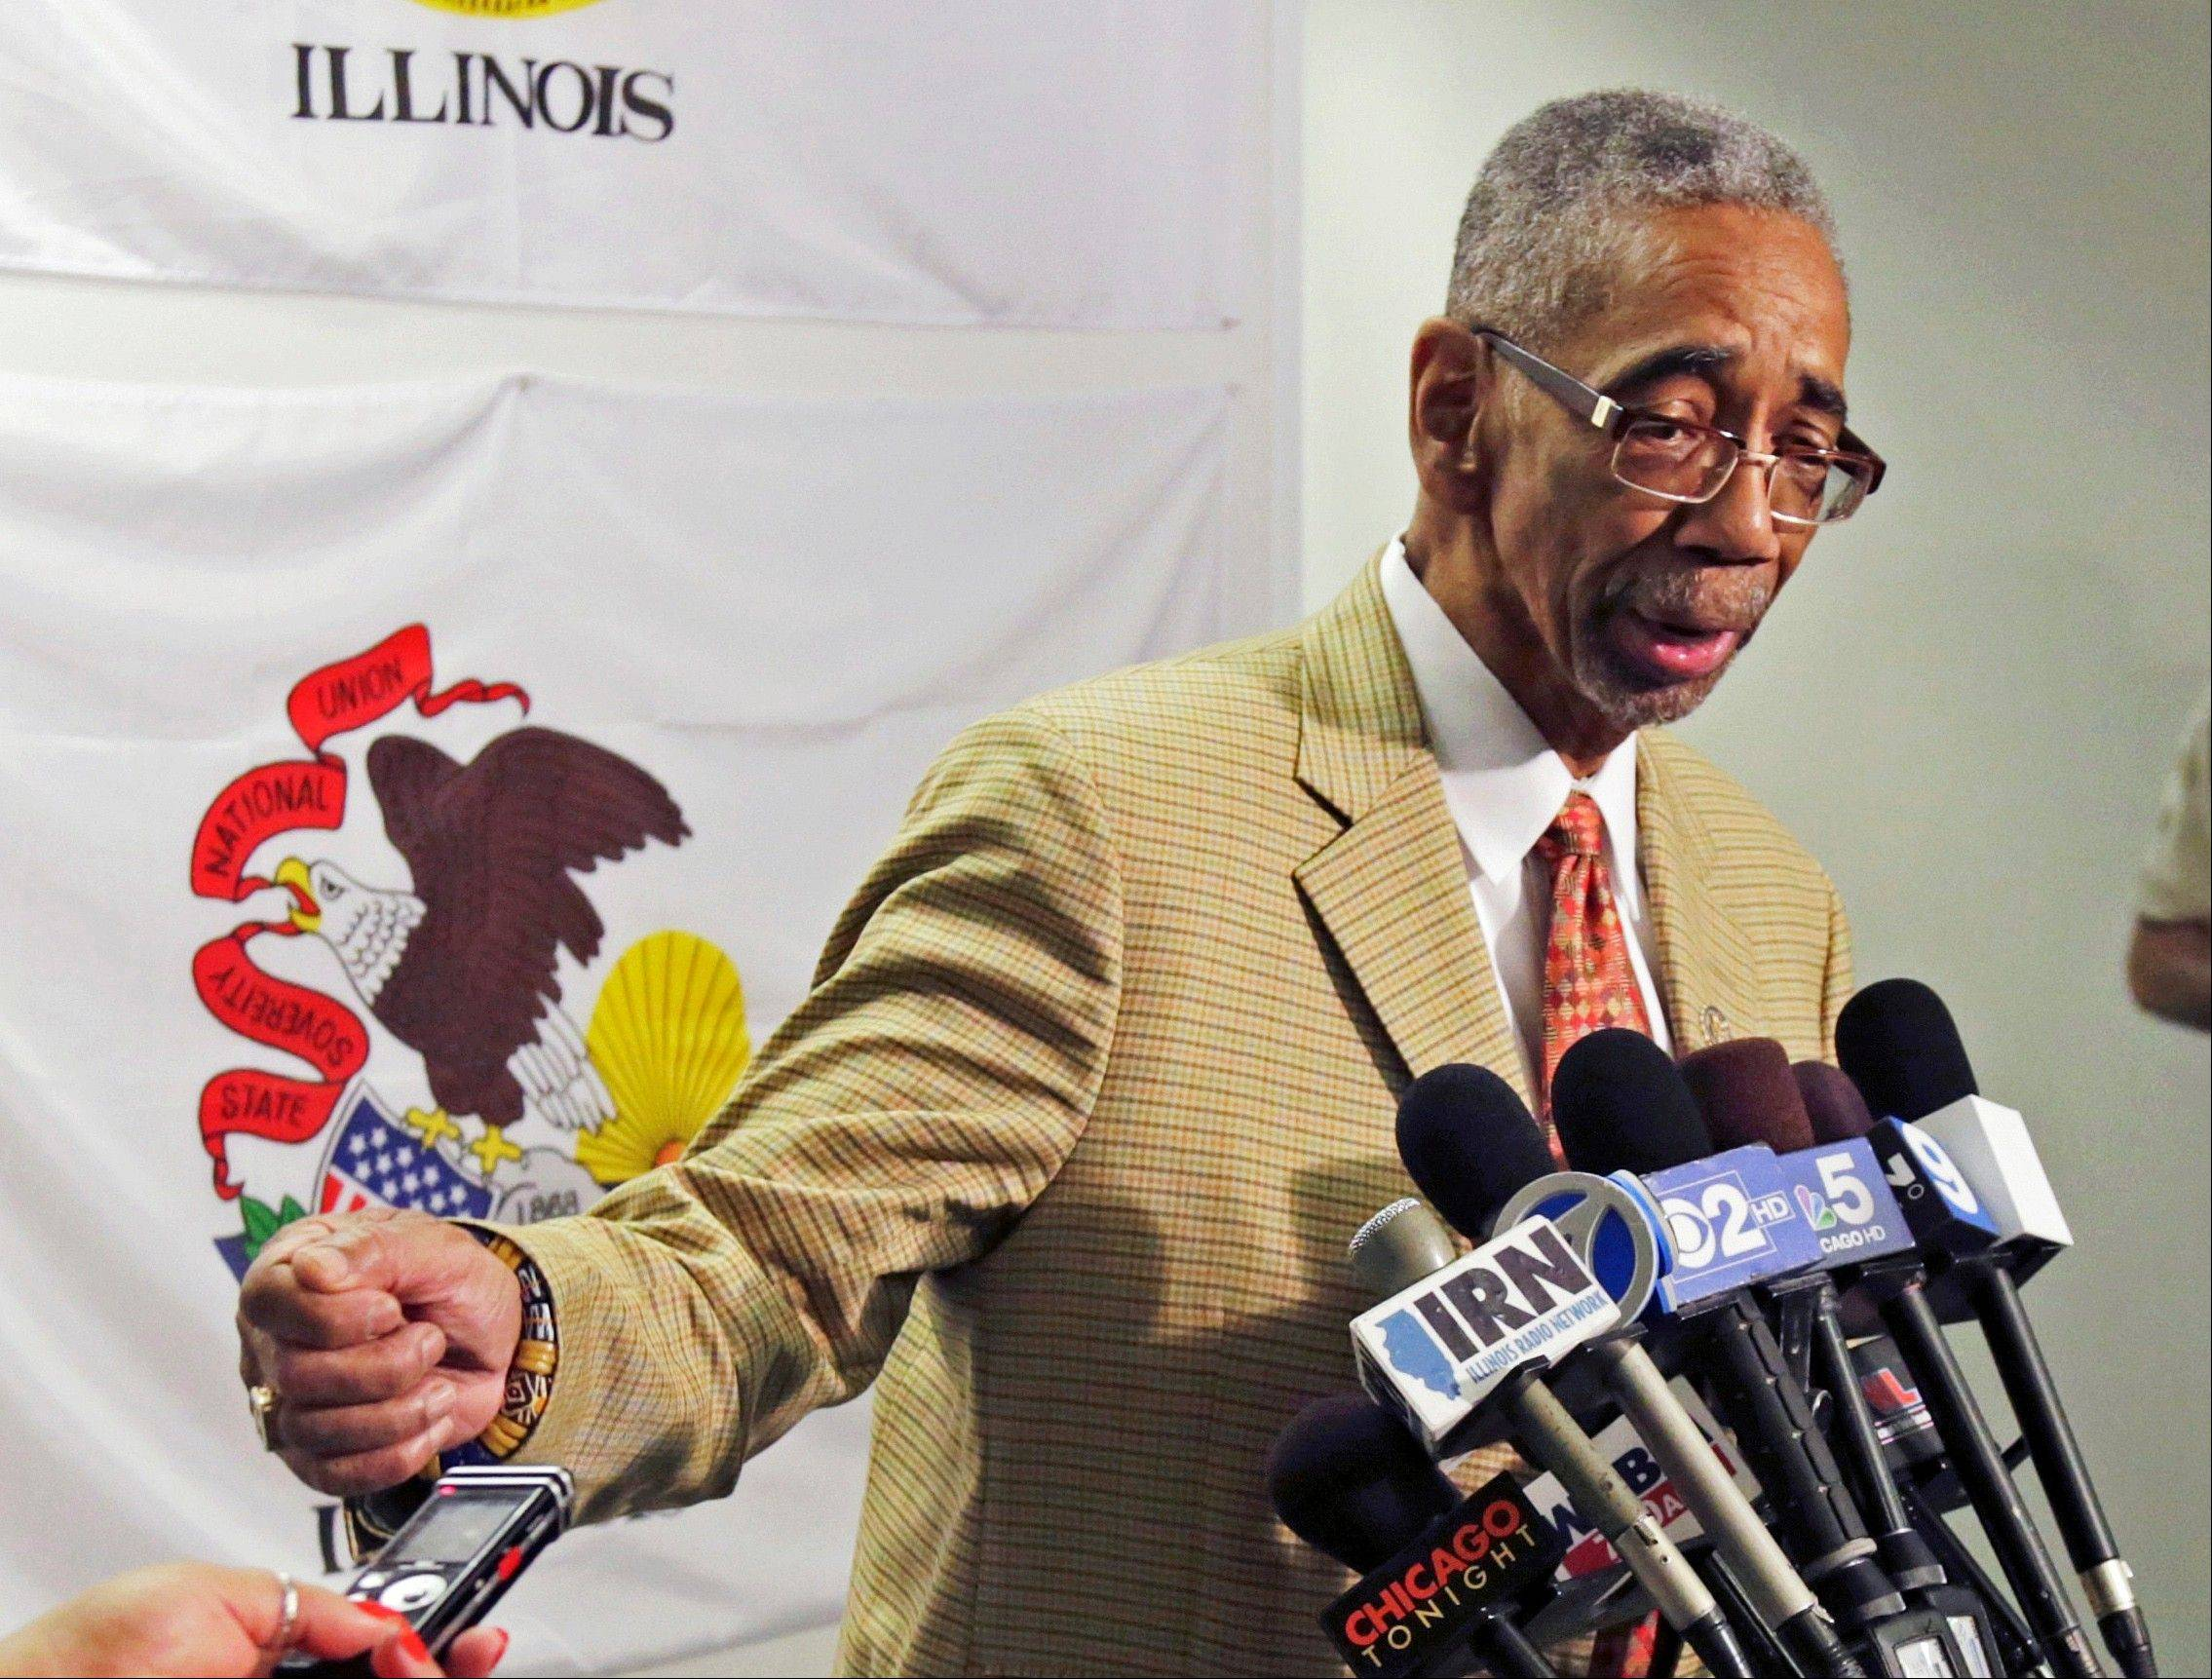 Congressman Bobby Rush denies that he pressured Alex Clifford, the former CEO of the Metra commuter rail agency, to award a contract to a nonprofit organization as part of a massive Chicago construction project.